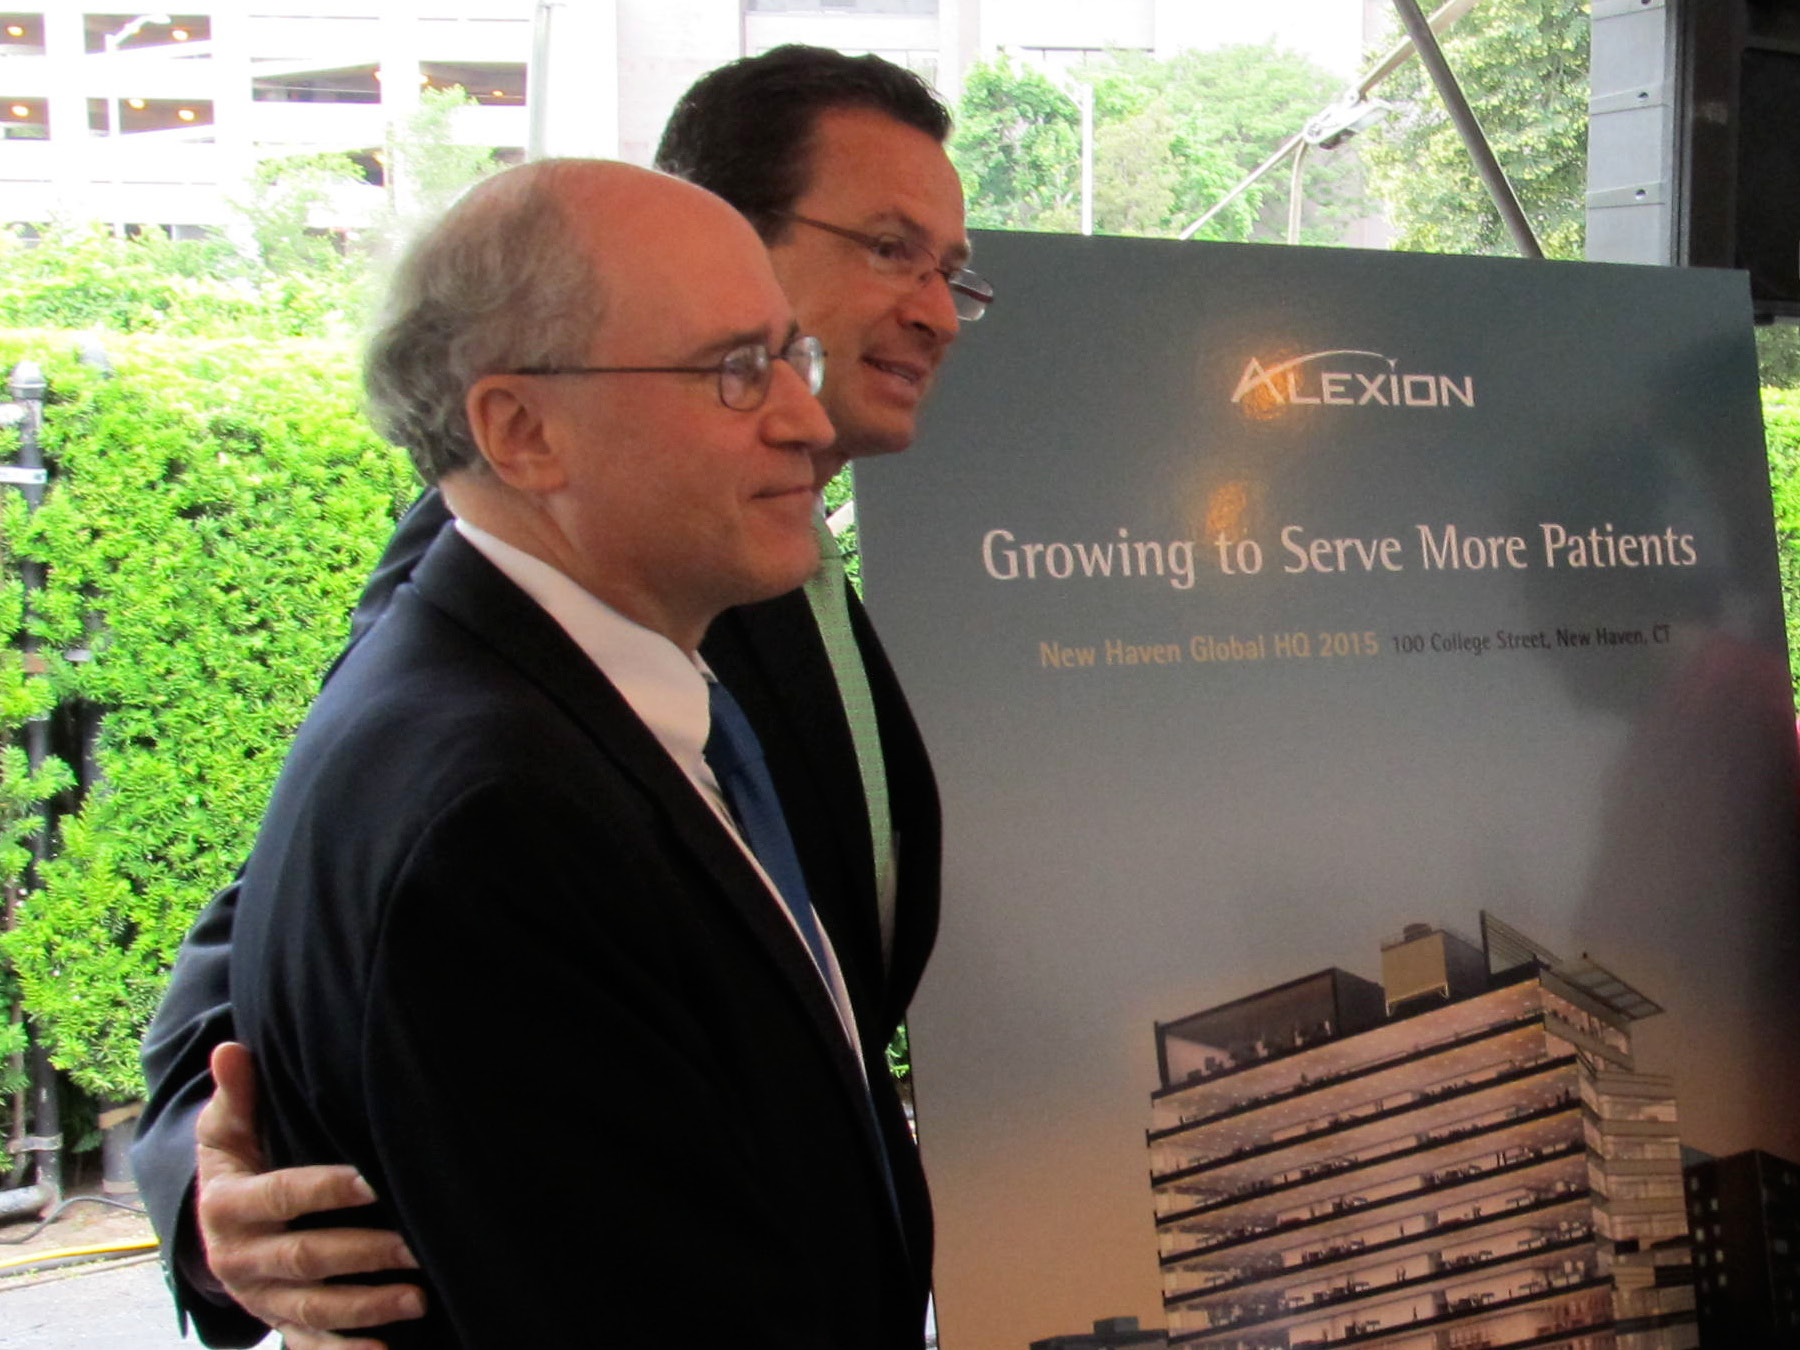 FILE PHOTO -- Gov. Dannel P. Malloy with Dr. Leonard Bell, the former CEO of Alexion.